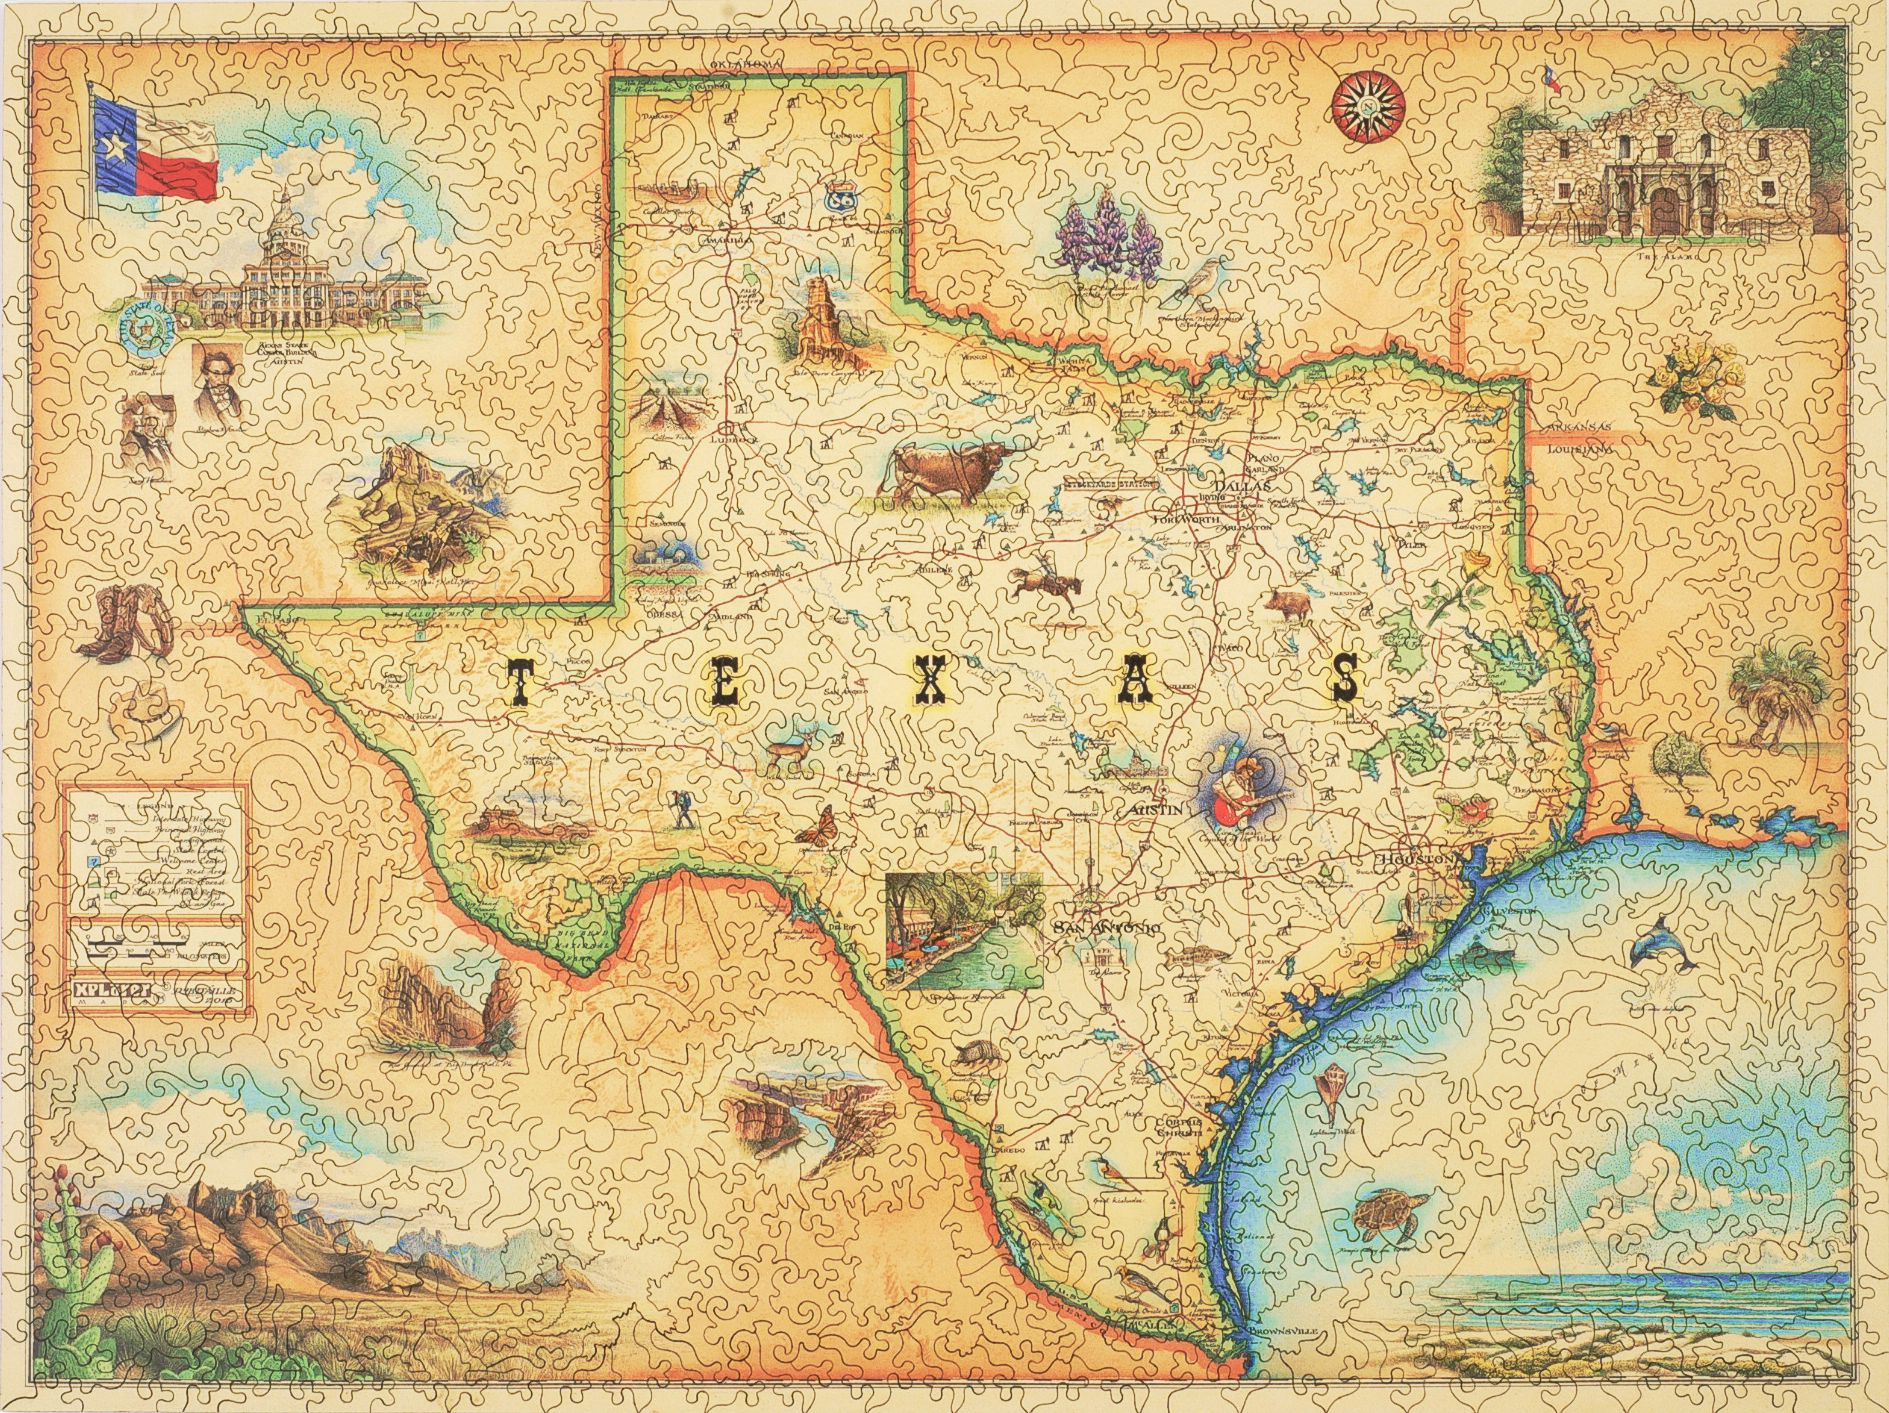 Texas Map Wooden Jigsaw Puzzle Liberty Puzzles Made In The USA - Texa map